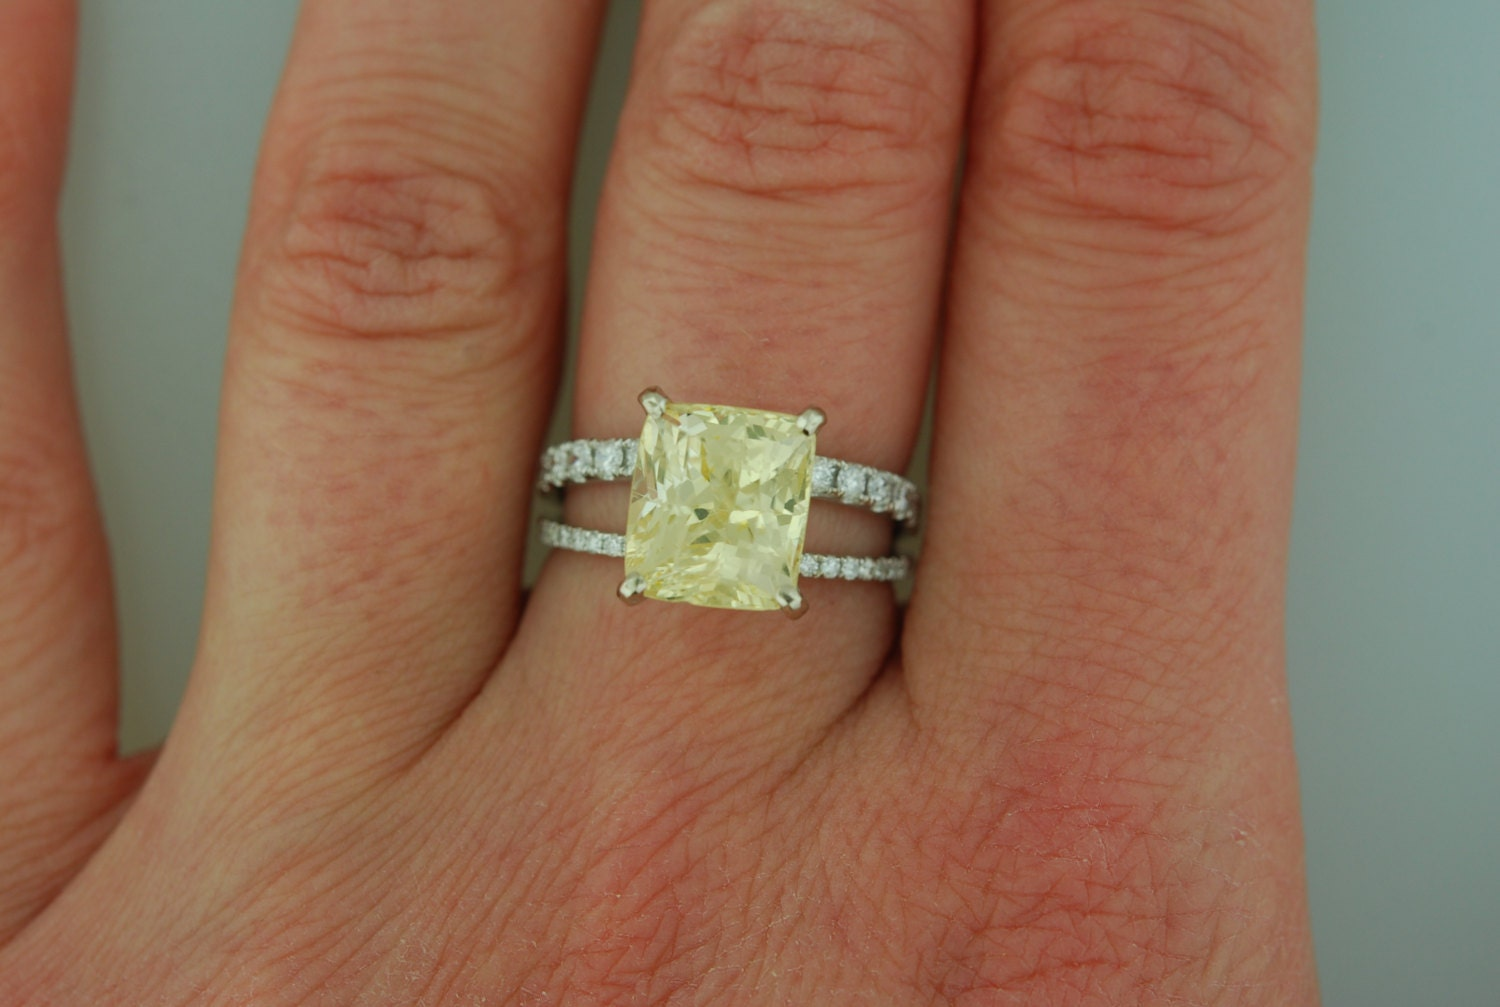 Yellow sapphire engagement ring 18k white gold diamond ring GIA certified 5